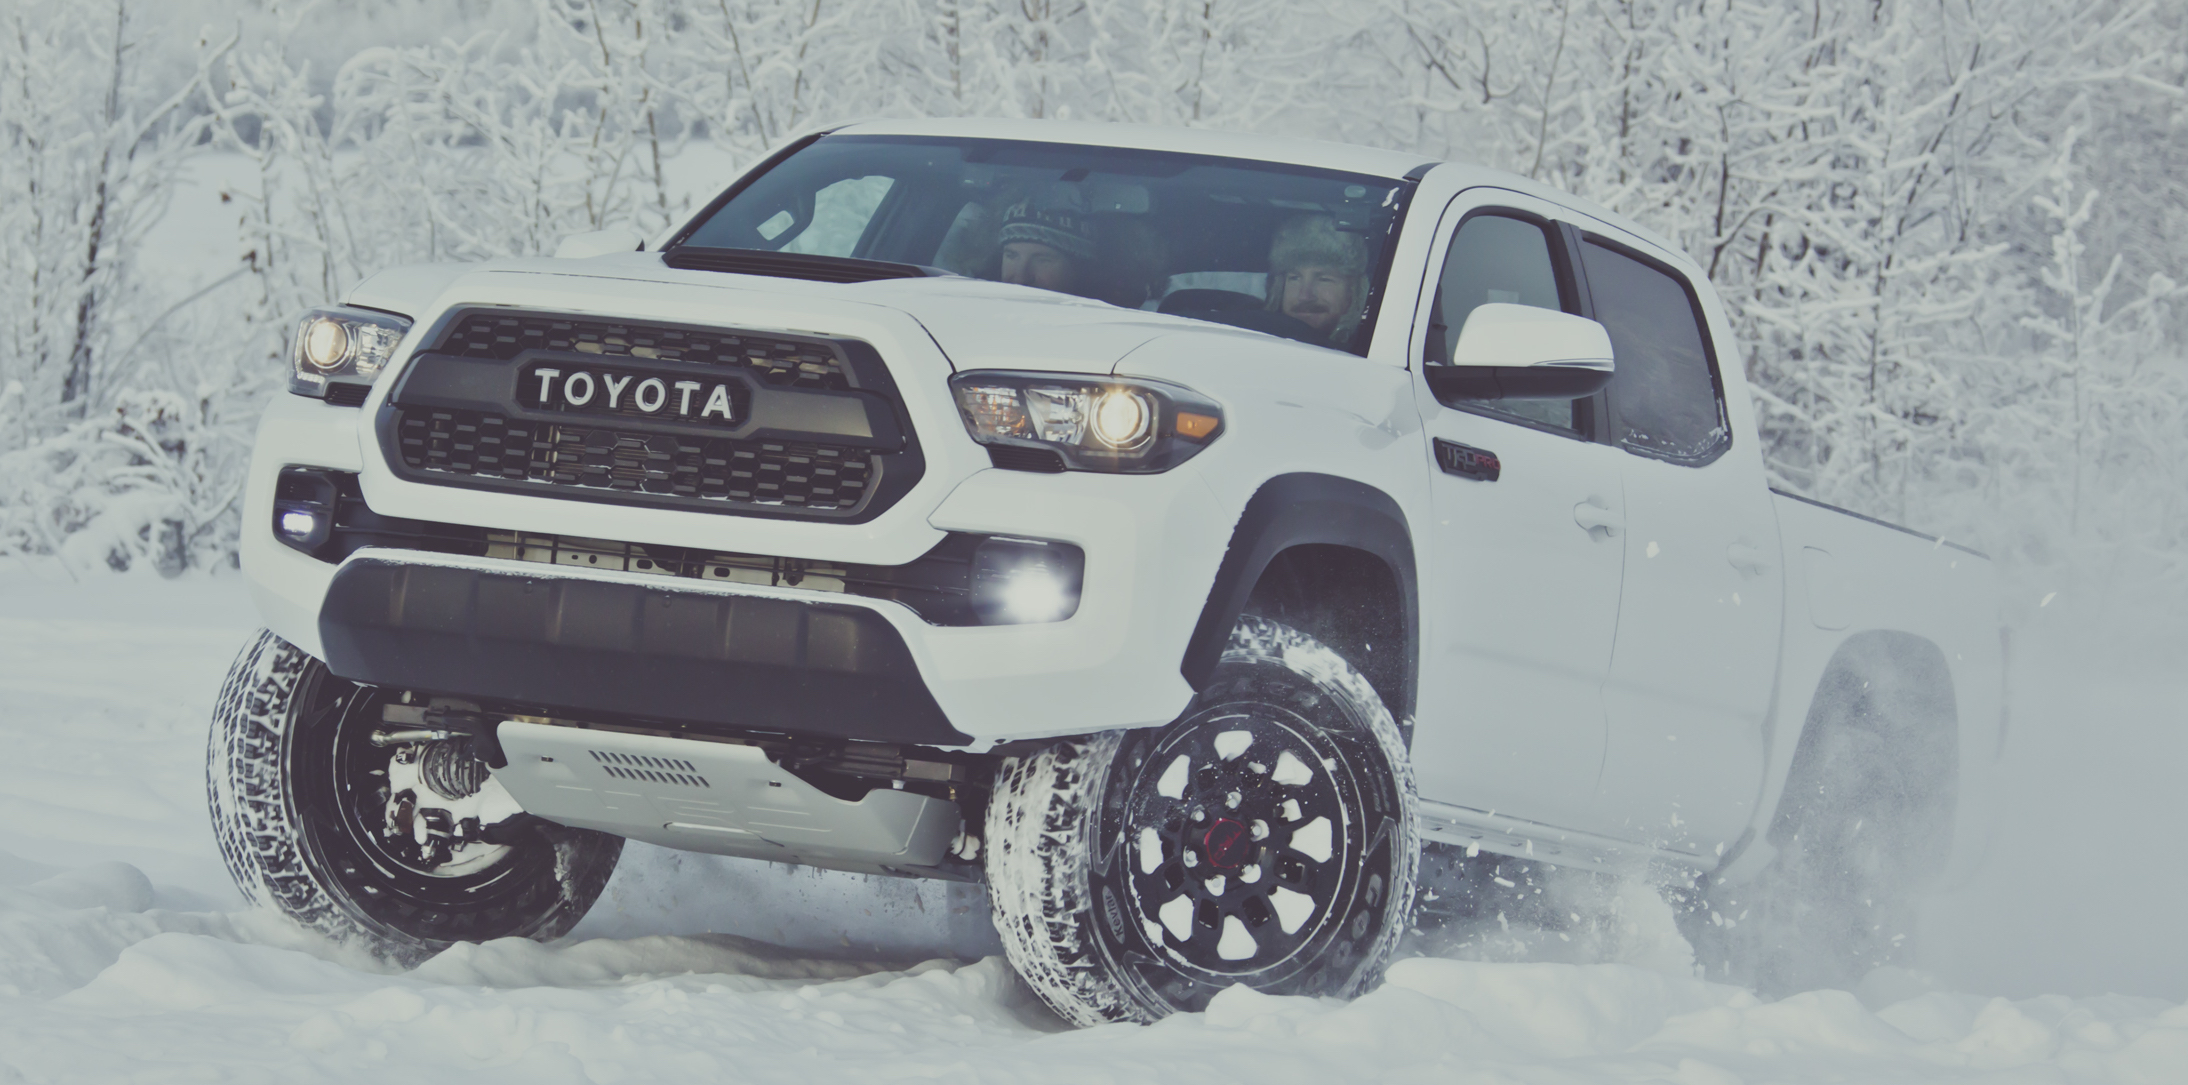 2017 toyota tacoma trd pro tougher look and feel. Black Bedroom Furniture Sets. Home Design Ideas